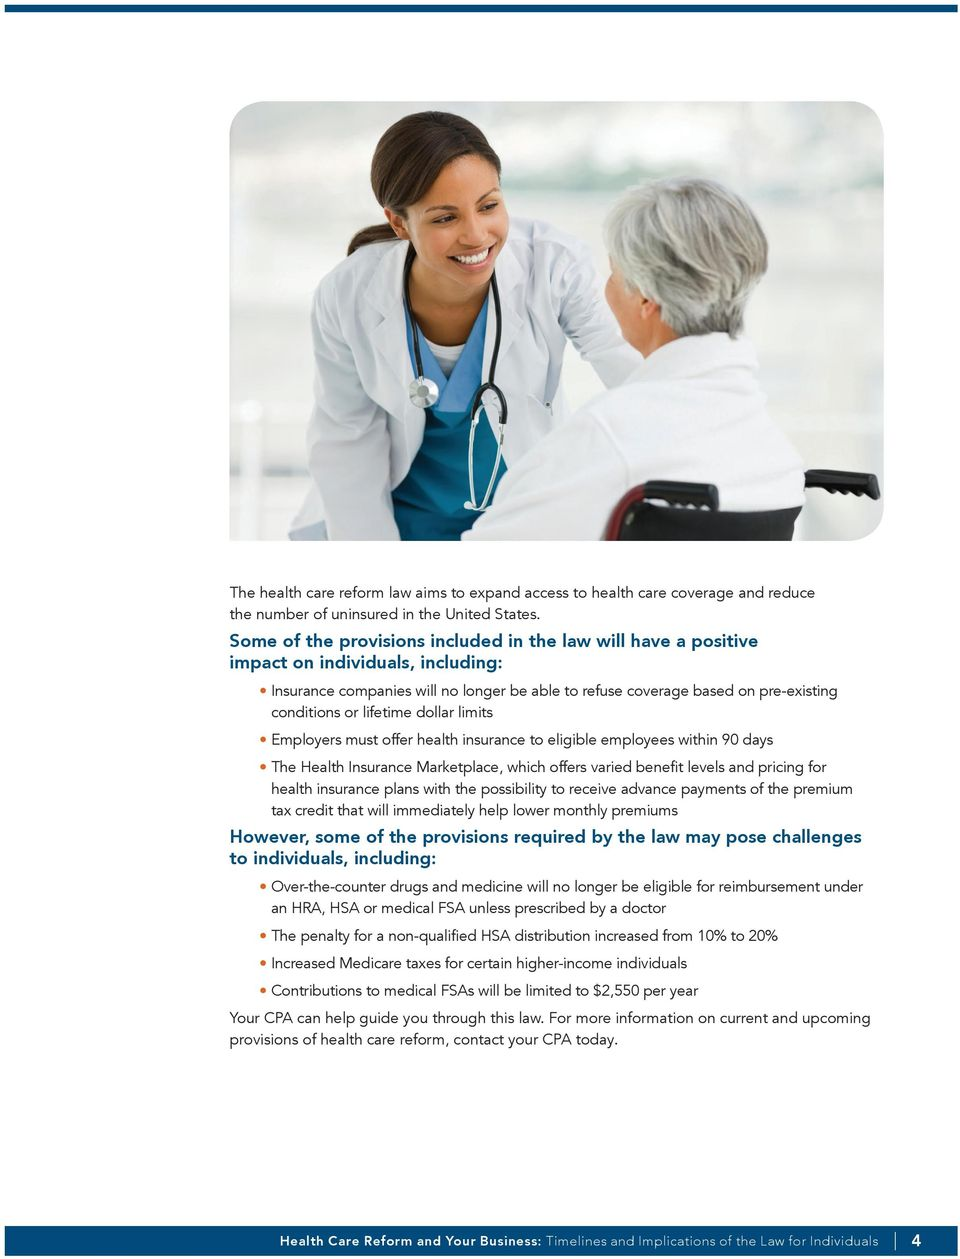 lifetime dollar limits Employers must offer health insurance to eligible employees within 90 days The Health Insurance Marketplace, which offers varied benefit levels and pricing for health insurance